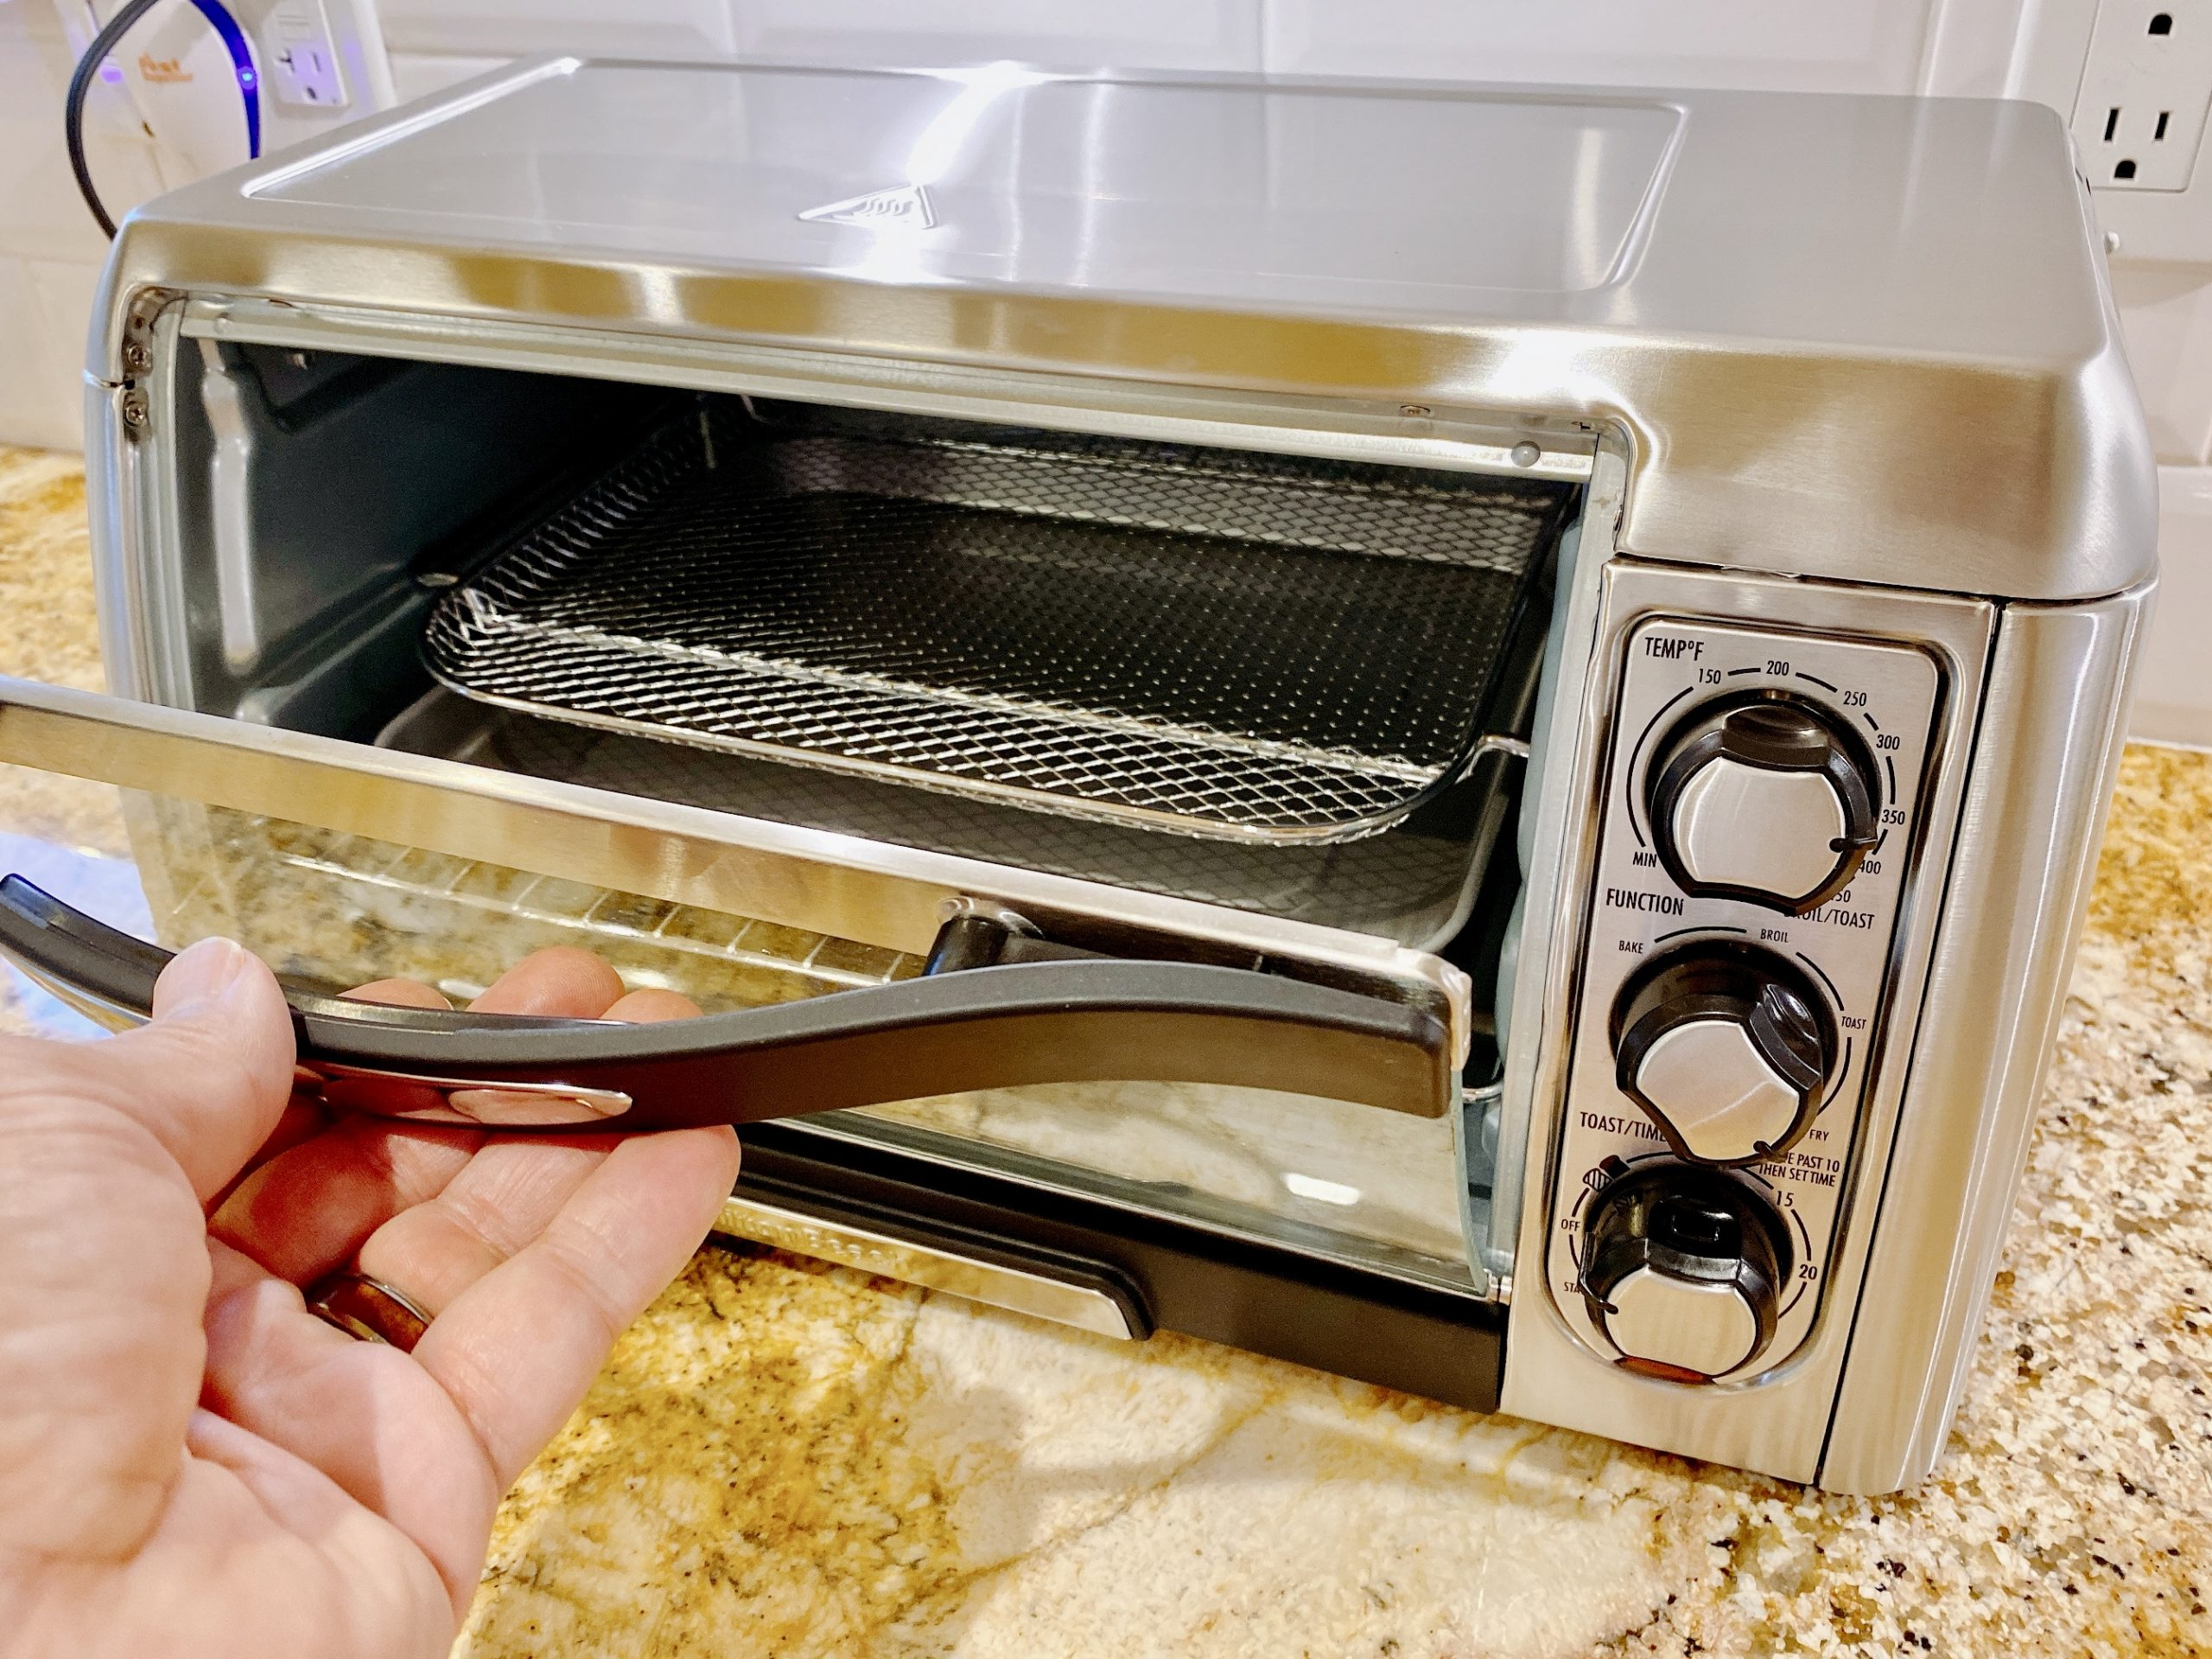 The Hamilton Beach Sure-Crisp Air Fry Toaster Oven has a large door with glass